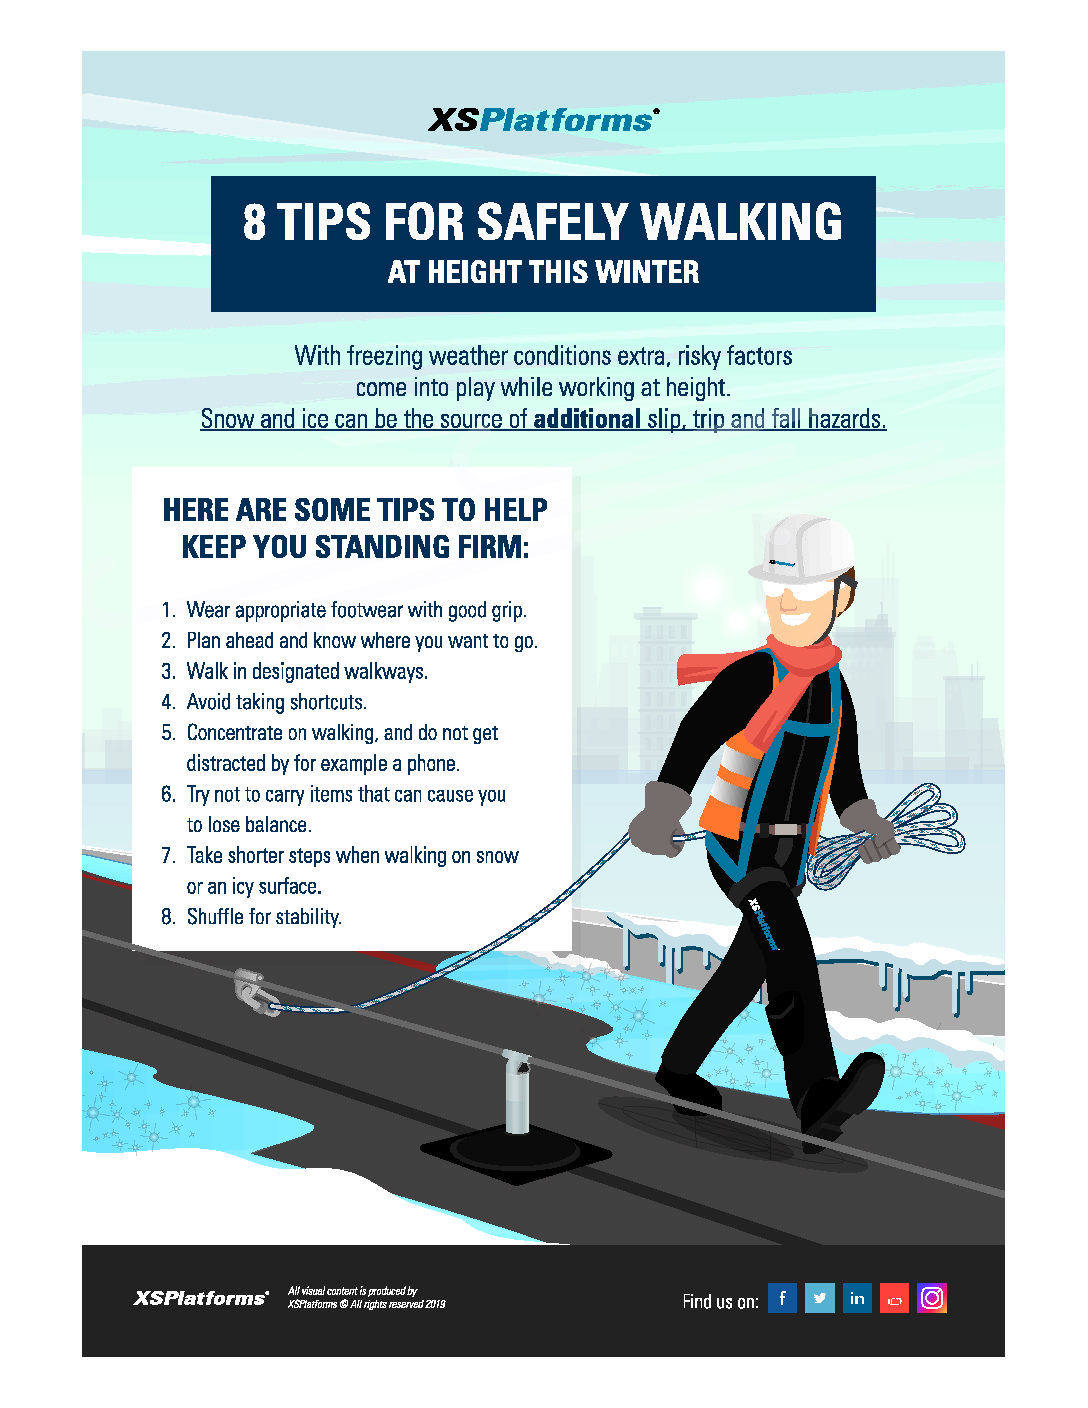 Construction Fall Protection Safety — Working at Height in Winter Weather